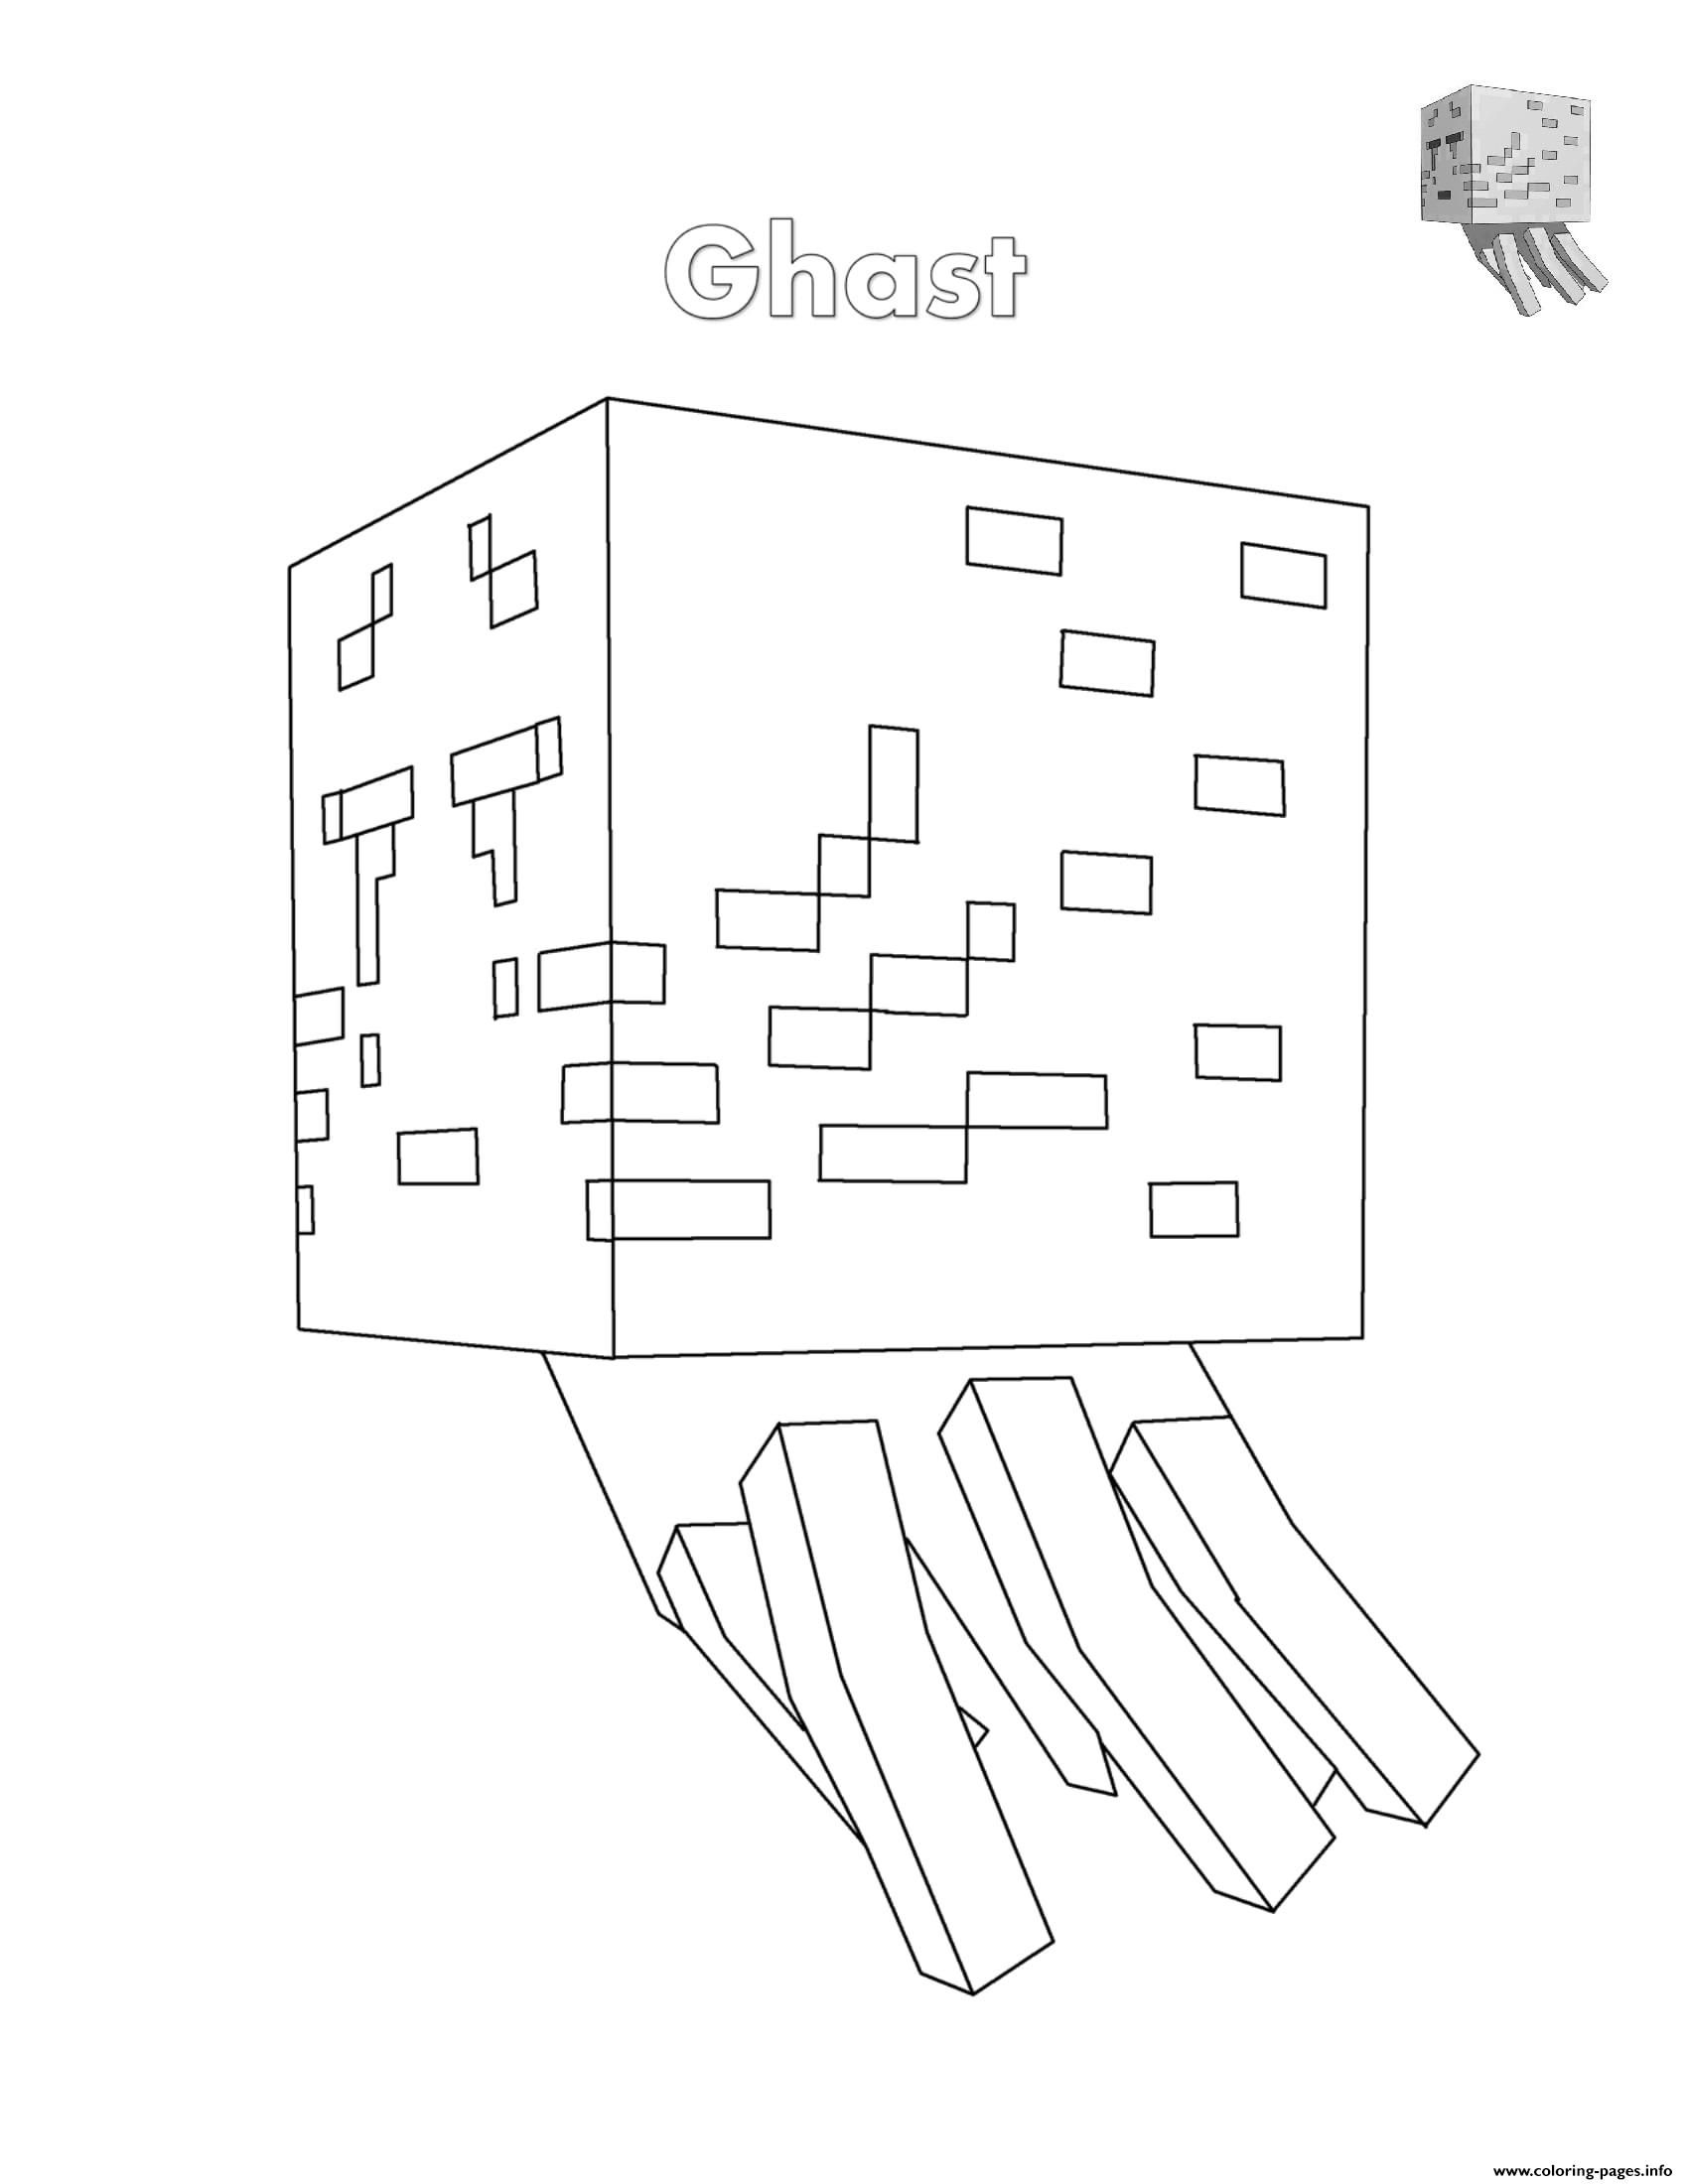 Print Ghast Minecraft Coloring Pages In 2021 Minecraft Coloring Pages Coloring Pages Shopkins Colouring Pages [ 2200 x 1700 Pixel ]